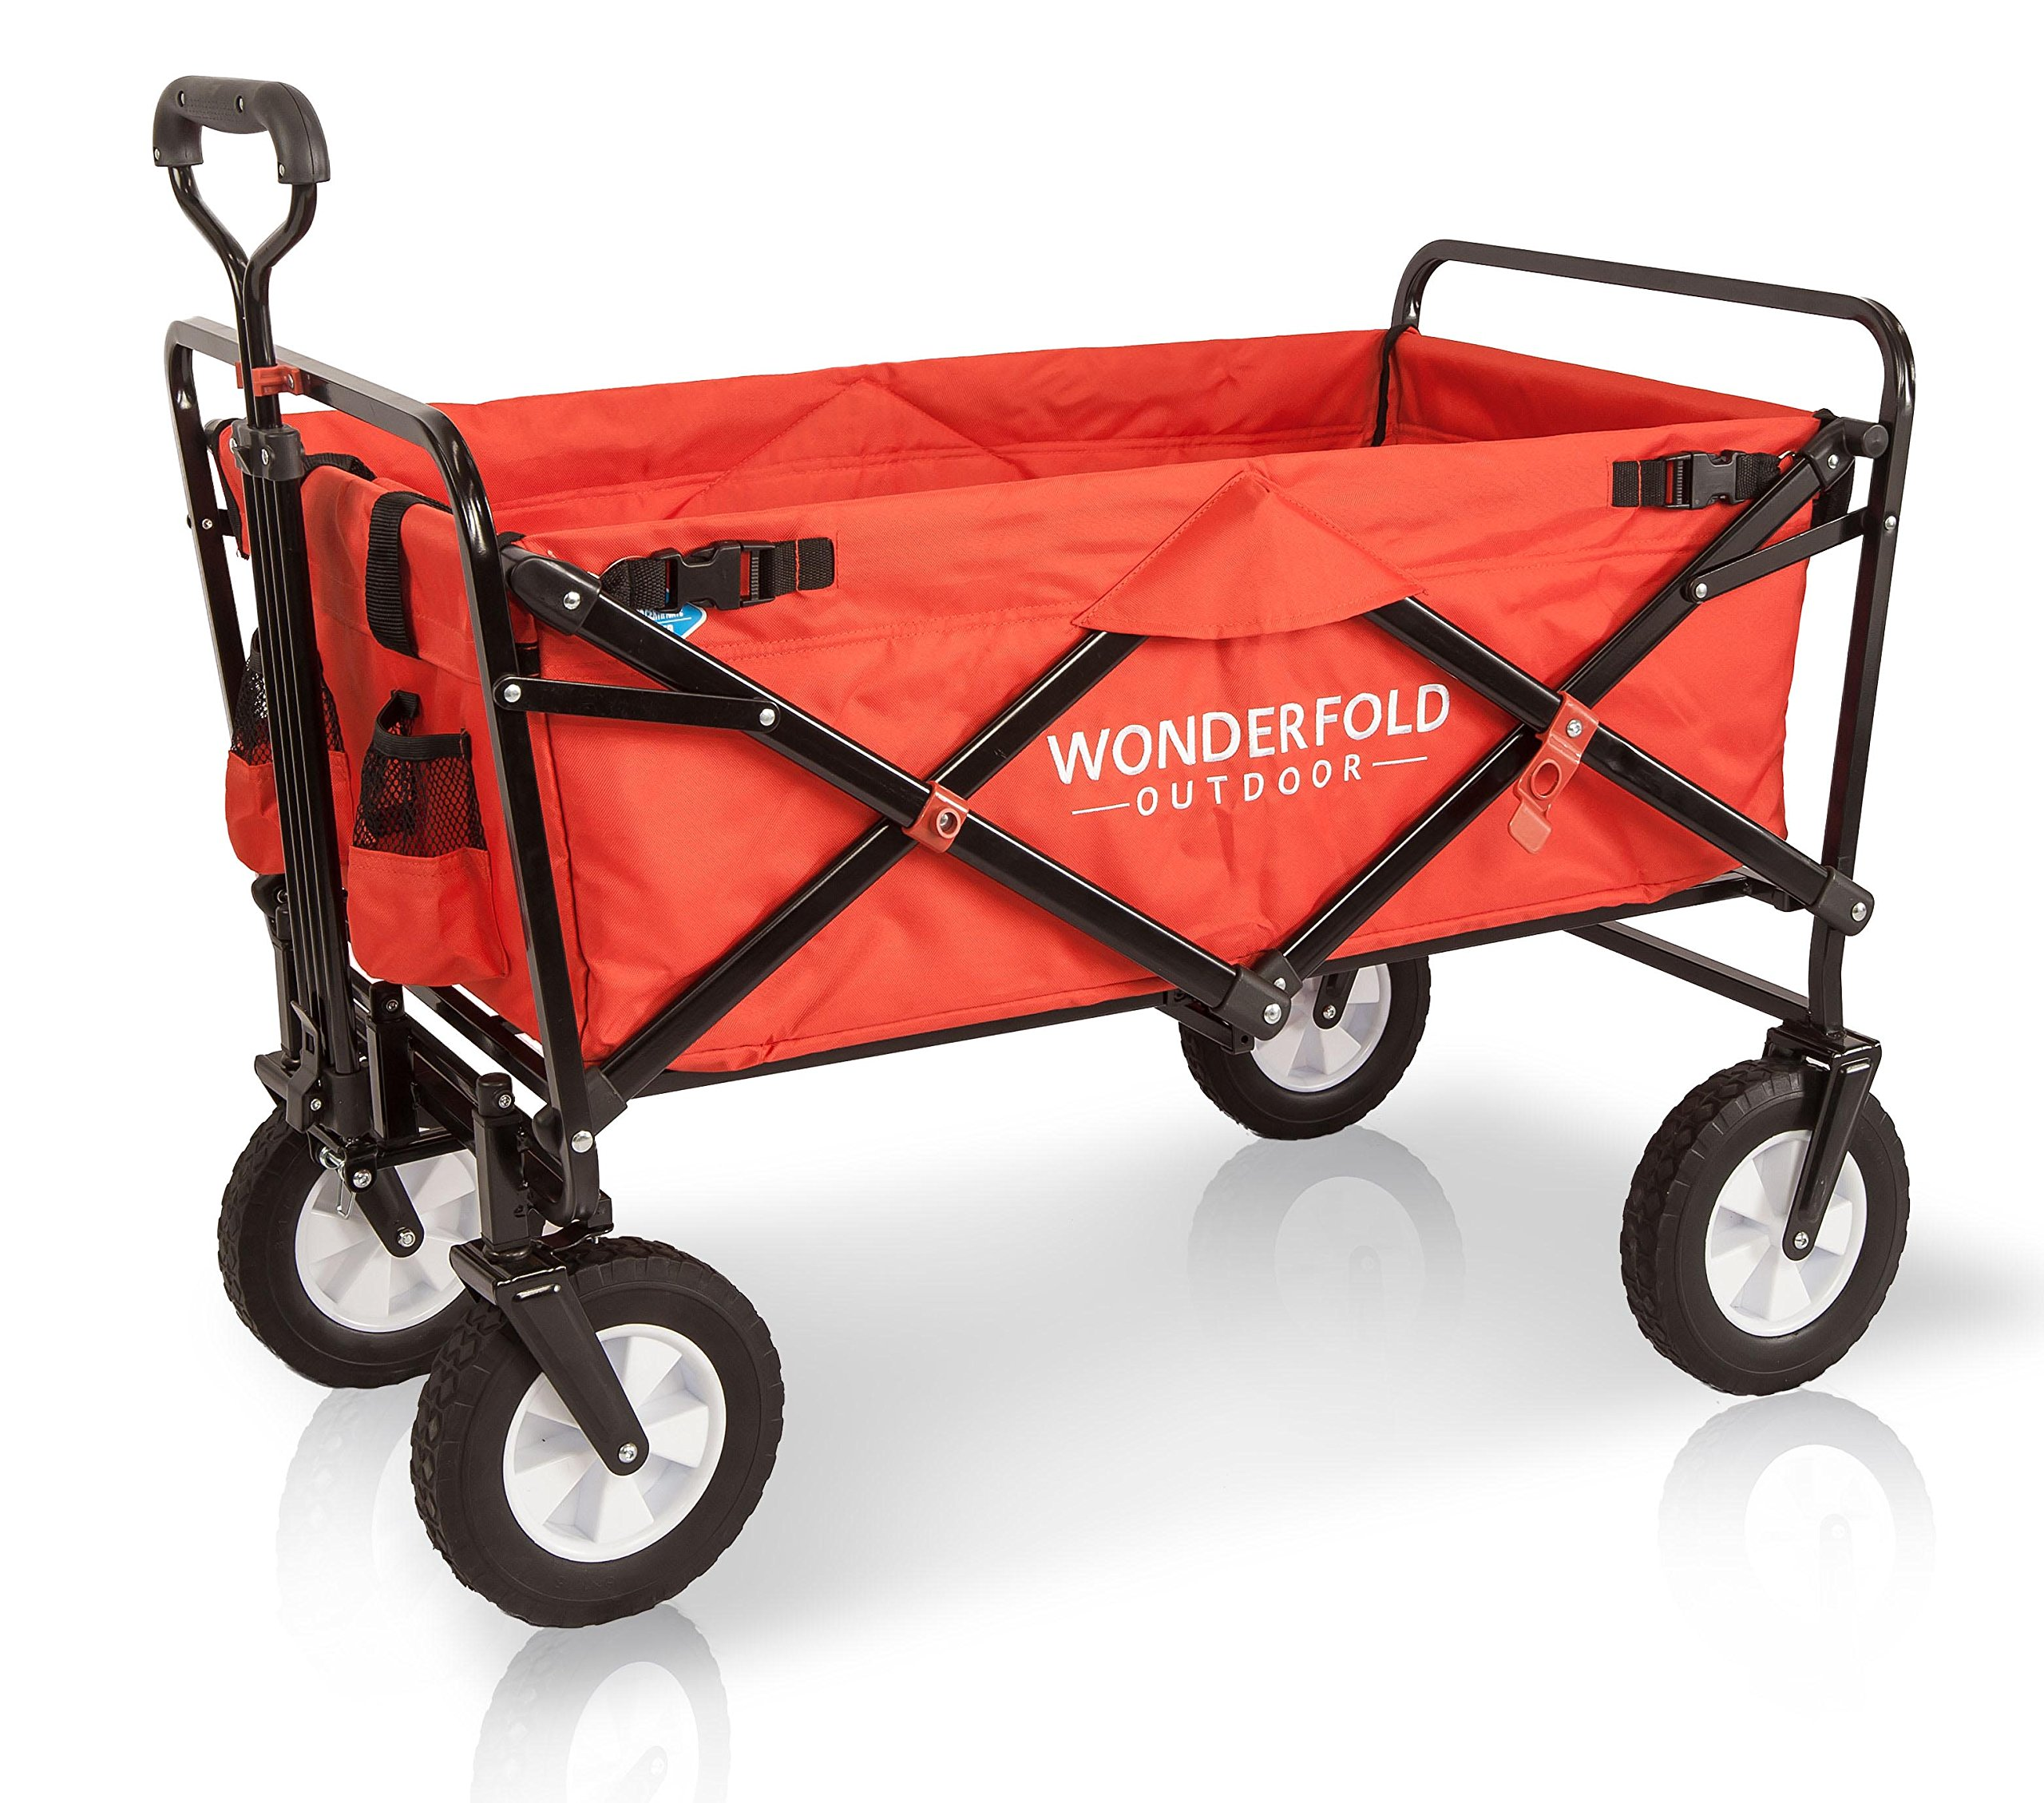 Wonder Fold Outdoor Next Generation Utility Folding Wagon with Removable Polyester Bag, Spring Bounce Feature, Auto Safety Locks, 180 Degree Steering Telescoping Handle Performance, Scarlet Red by WonderFold Outdoor (Image #2)